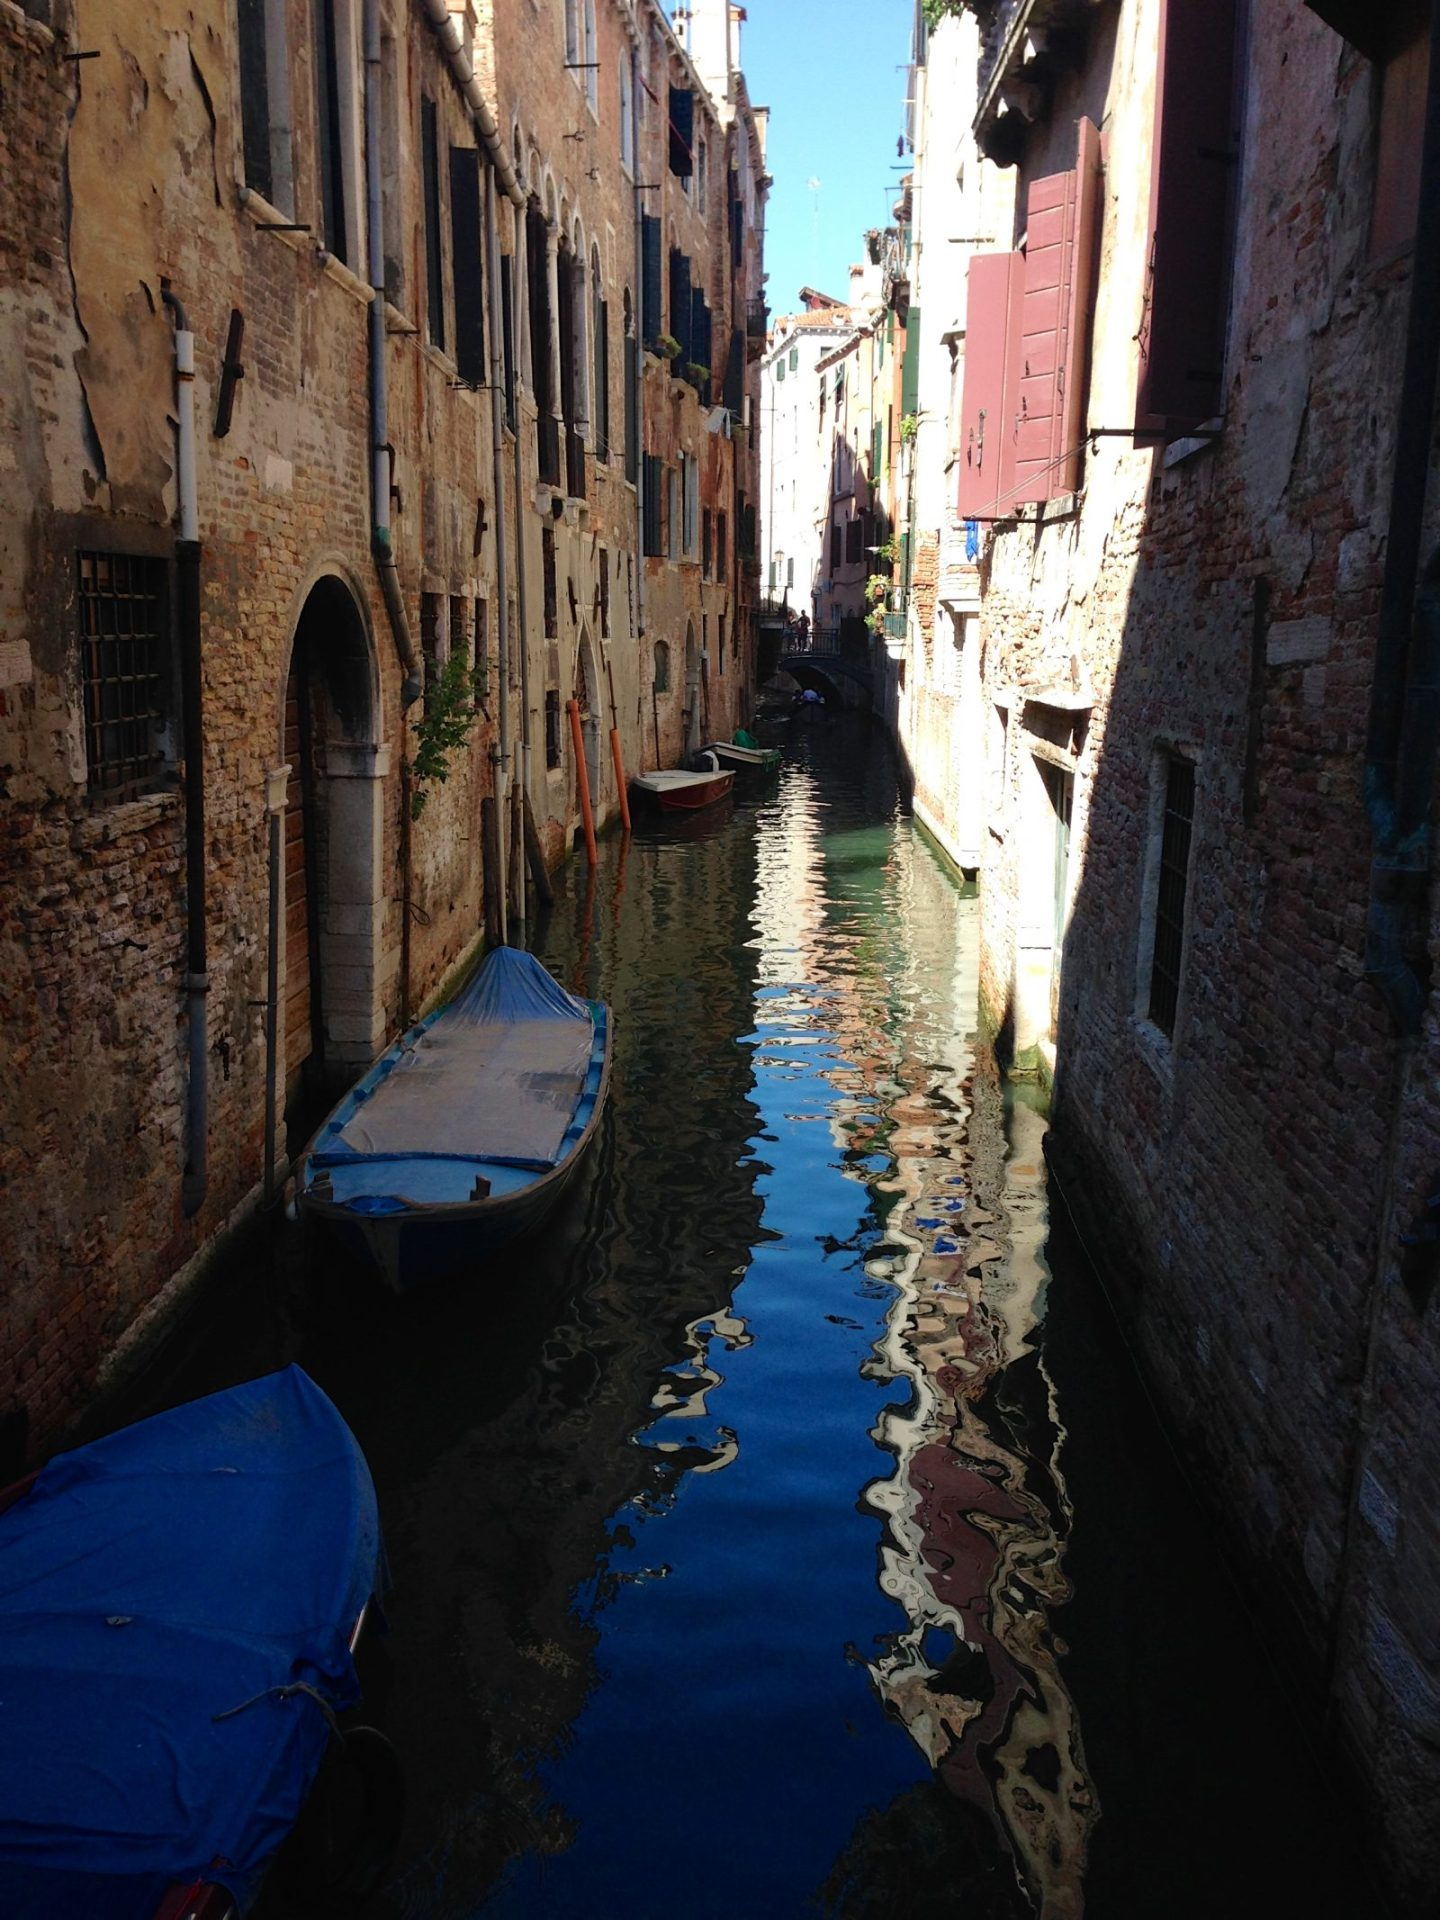 Taking a boat ride in Venice, Italy.